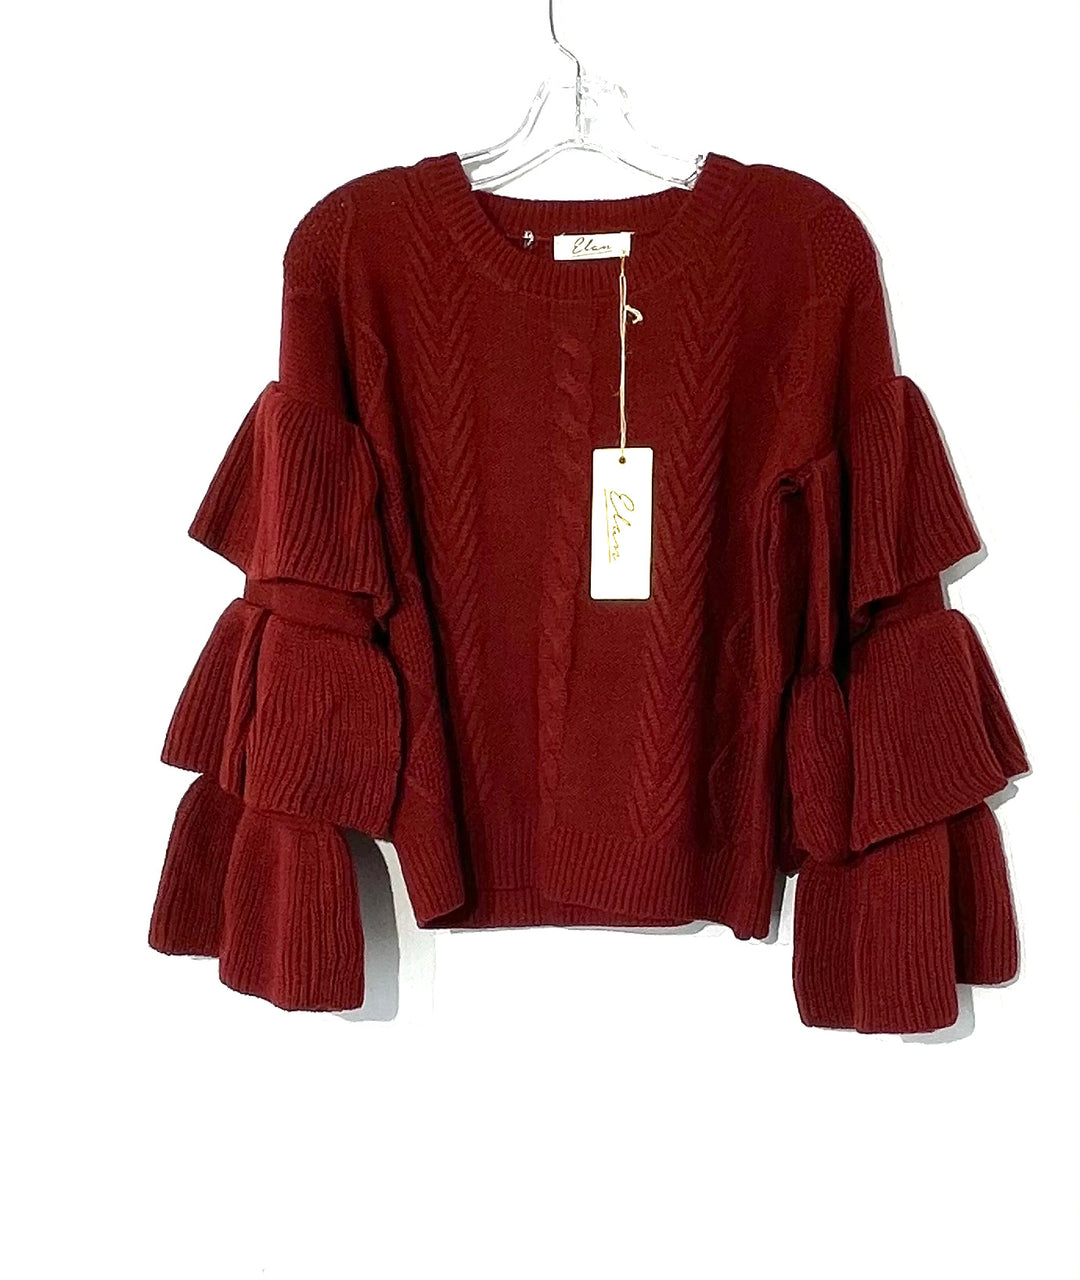 Primary Photo - BRAND: ELAN <BR>STYLE: SWEATER LIGHTWEIGHT <BR>COLOR: MAROON <BR>SIZE: S <BR>SKU: 262-26275-73501